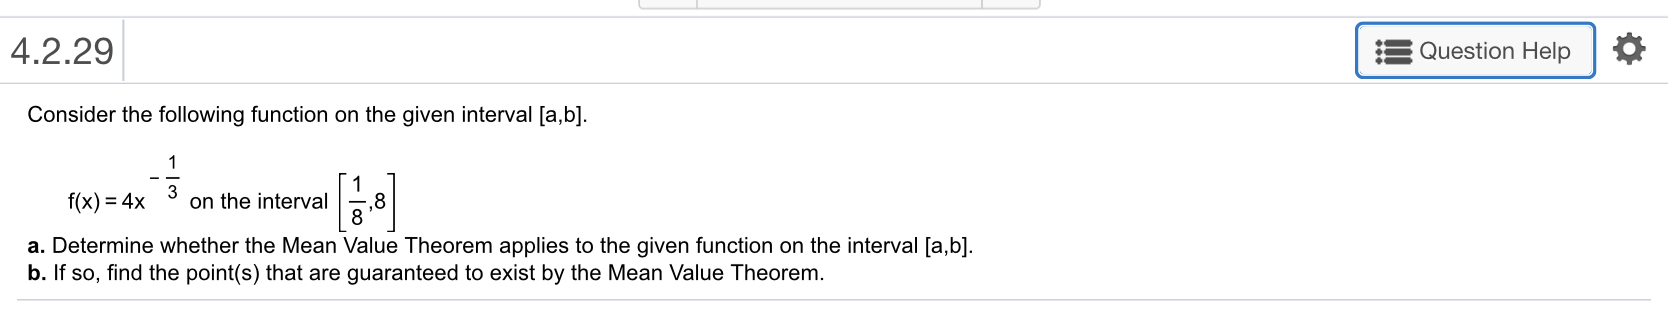 4.2.29 Question Help Consider the following function on the given interval [a,b] f(x)-4x on the interval ,8 a. Determine whether the Mean Value Theorem applies to the given function on the interval [a,b] b. If so, find the point(s) that are guaranteed to exist by the Mean Value Theorem